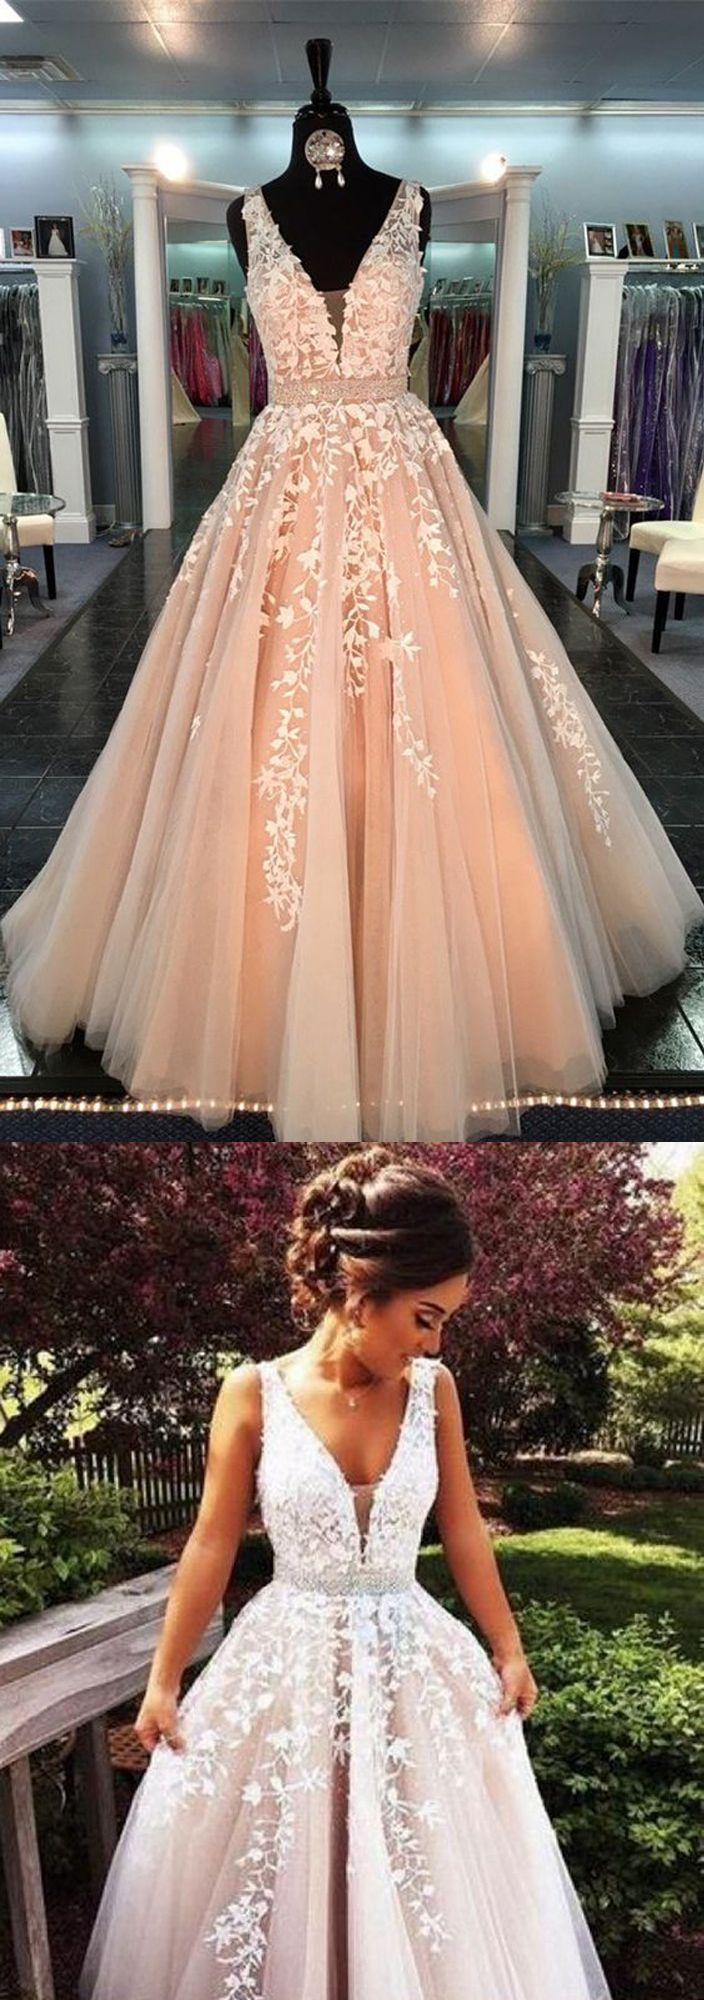 V-Neck Prom Gown,Long Prom Dress,Lace Prom Dresses,Appliques Prom Dress,Sleeveless Formal Dress,Tulle Prom Dresses,Long Prom Dress,New Arrival Prom Gown,Prom Dresses